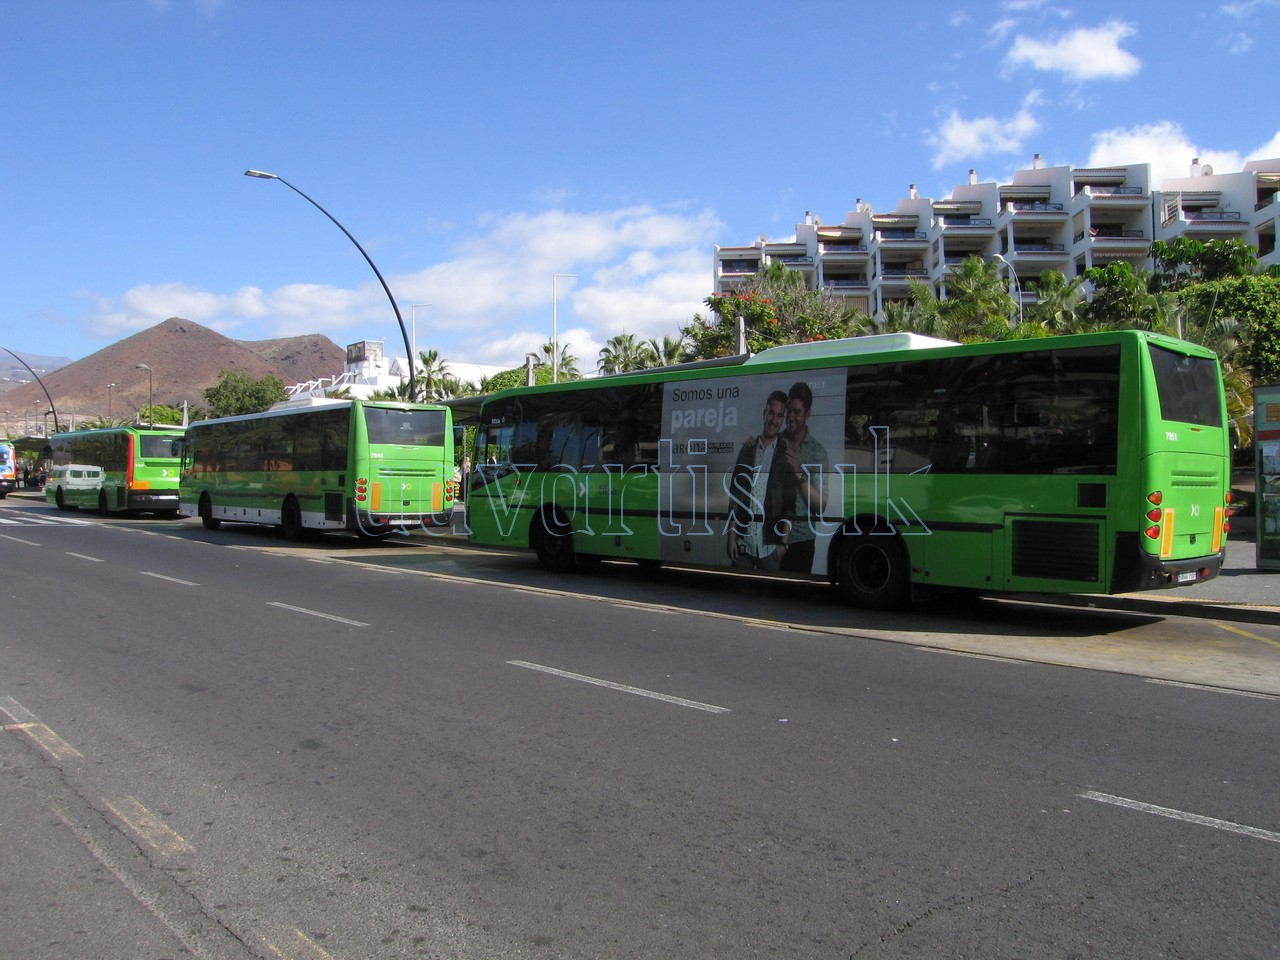 Tenerife bus in Los Cristianos bus station